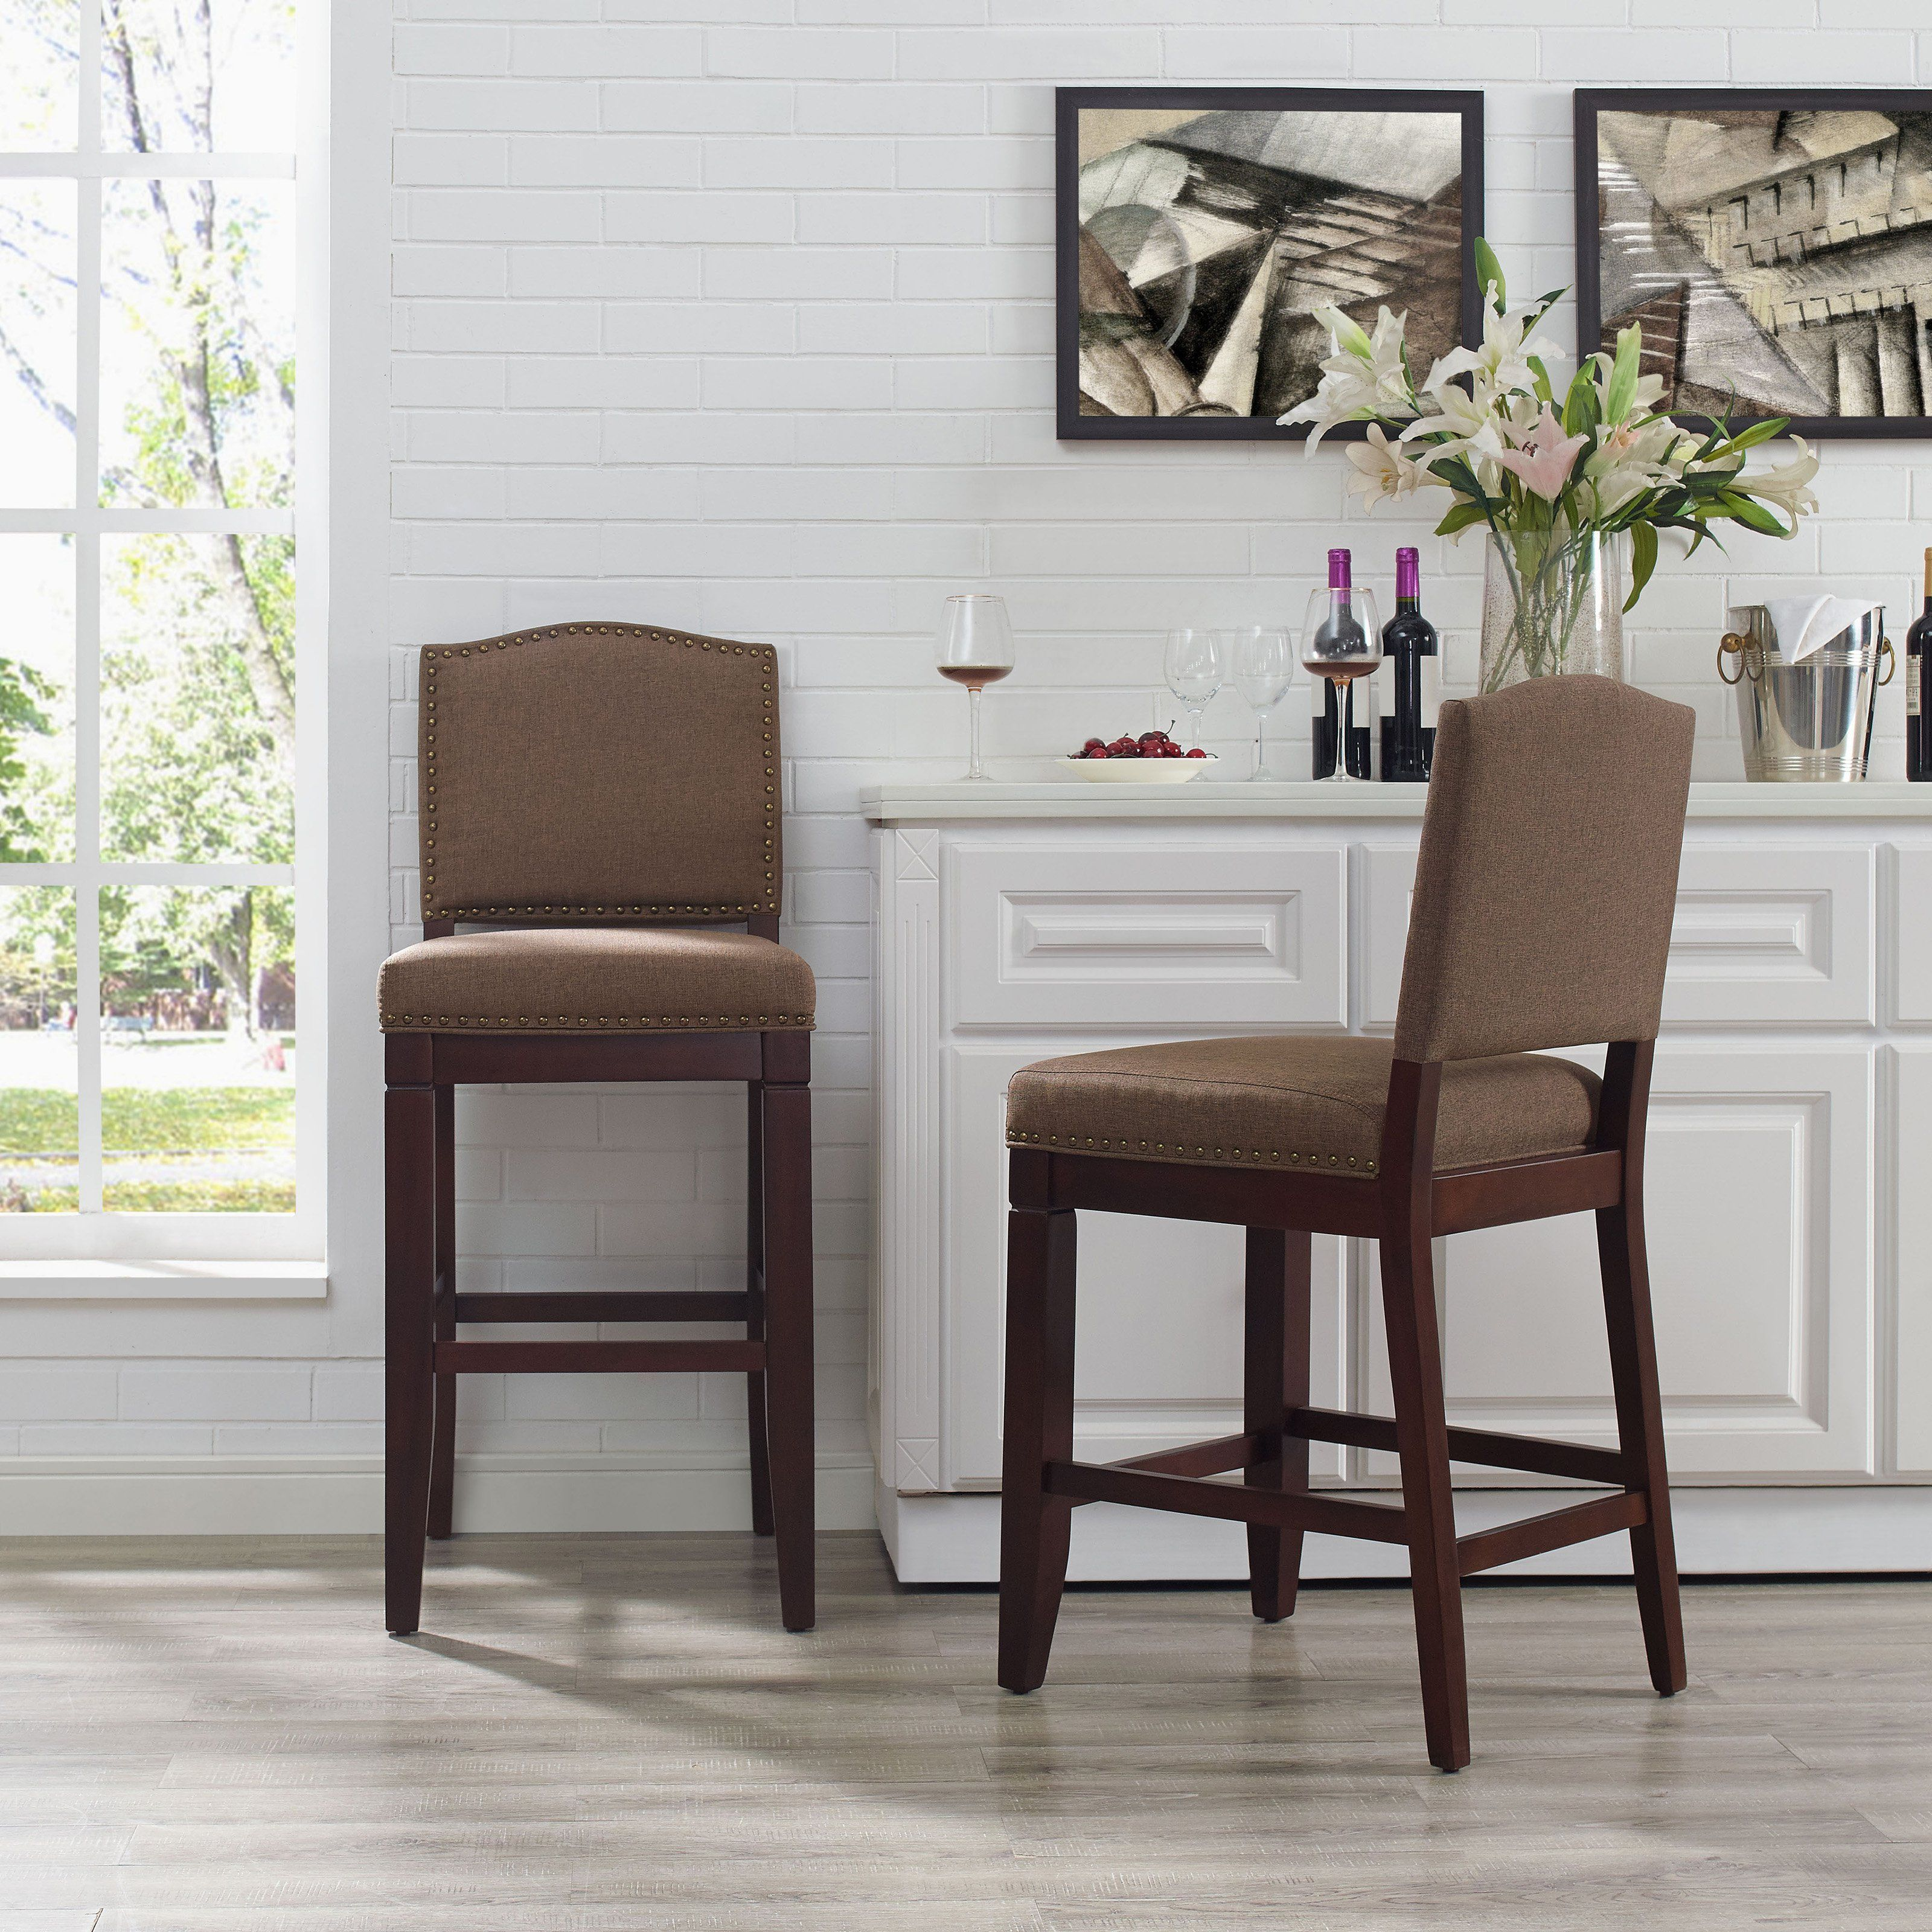 Upholstered counter stool cf521926es bo